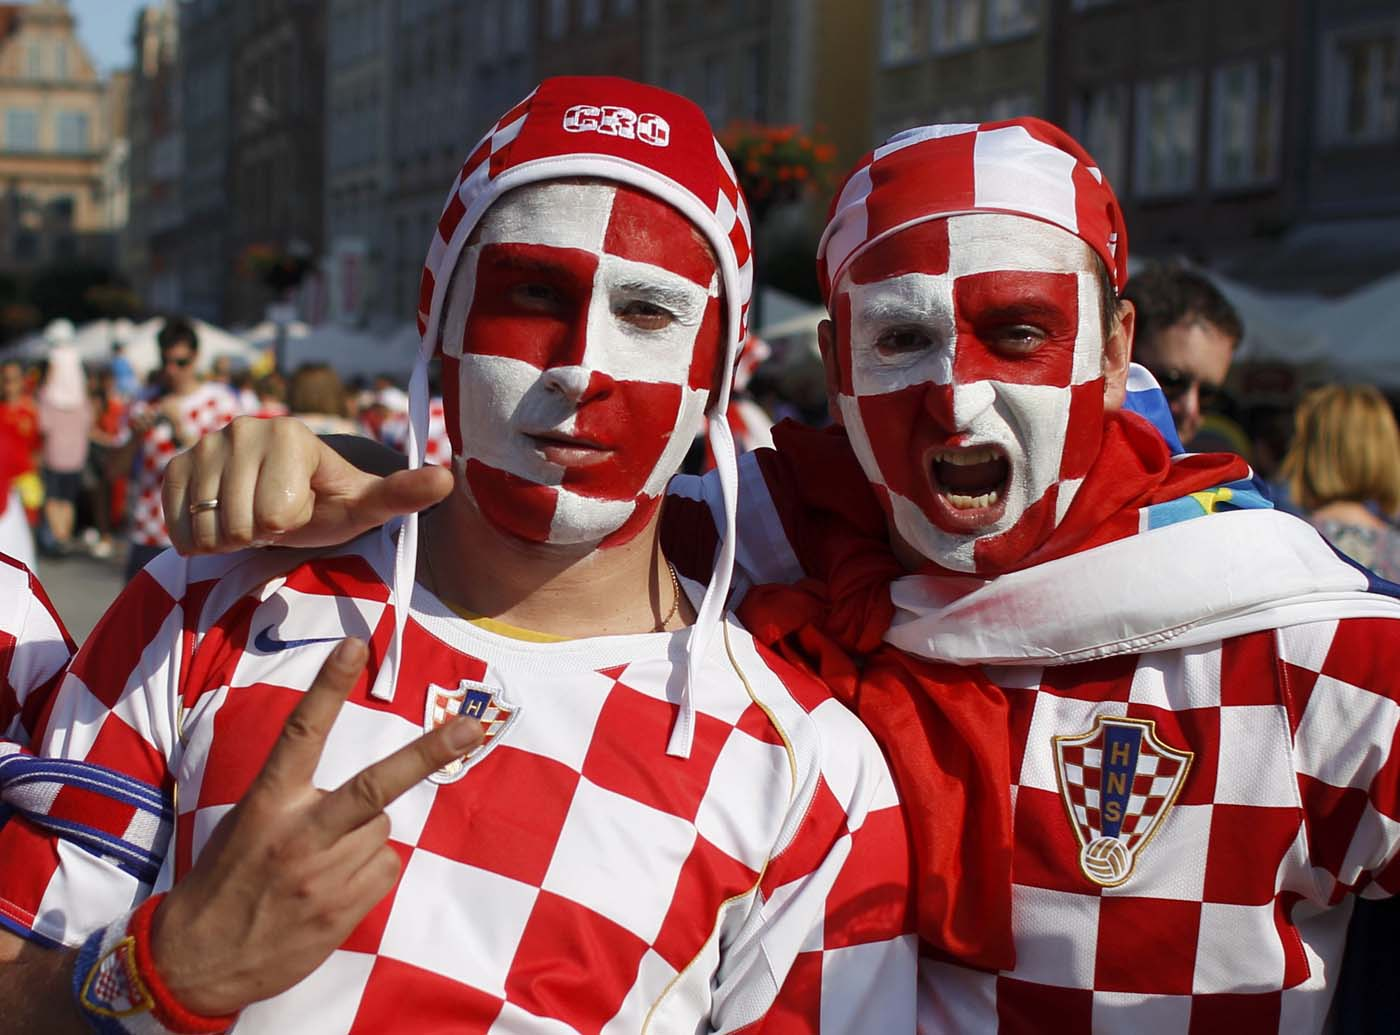 Croatian fans cheer before Euro 2012 soccer match against Spain in the Old Town of Gdansk June 18, 2012. (Peter Andrews/Reuters)